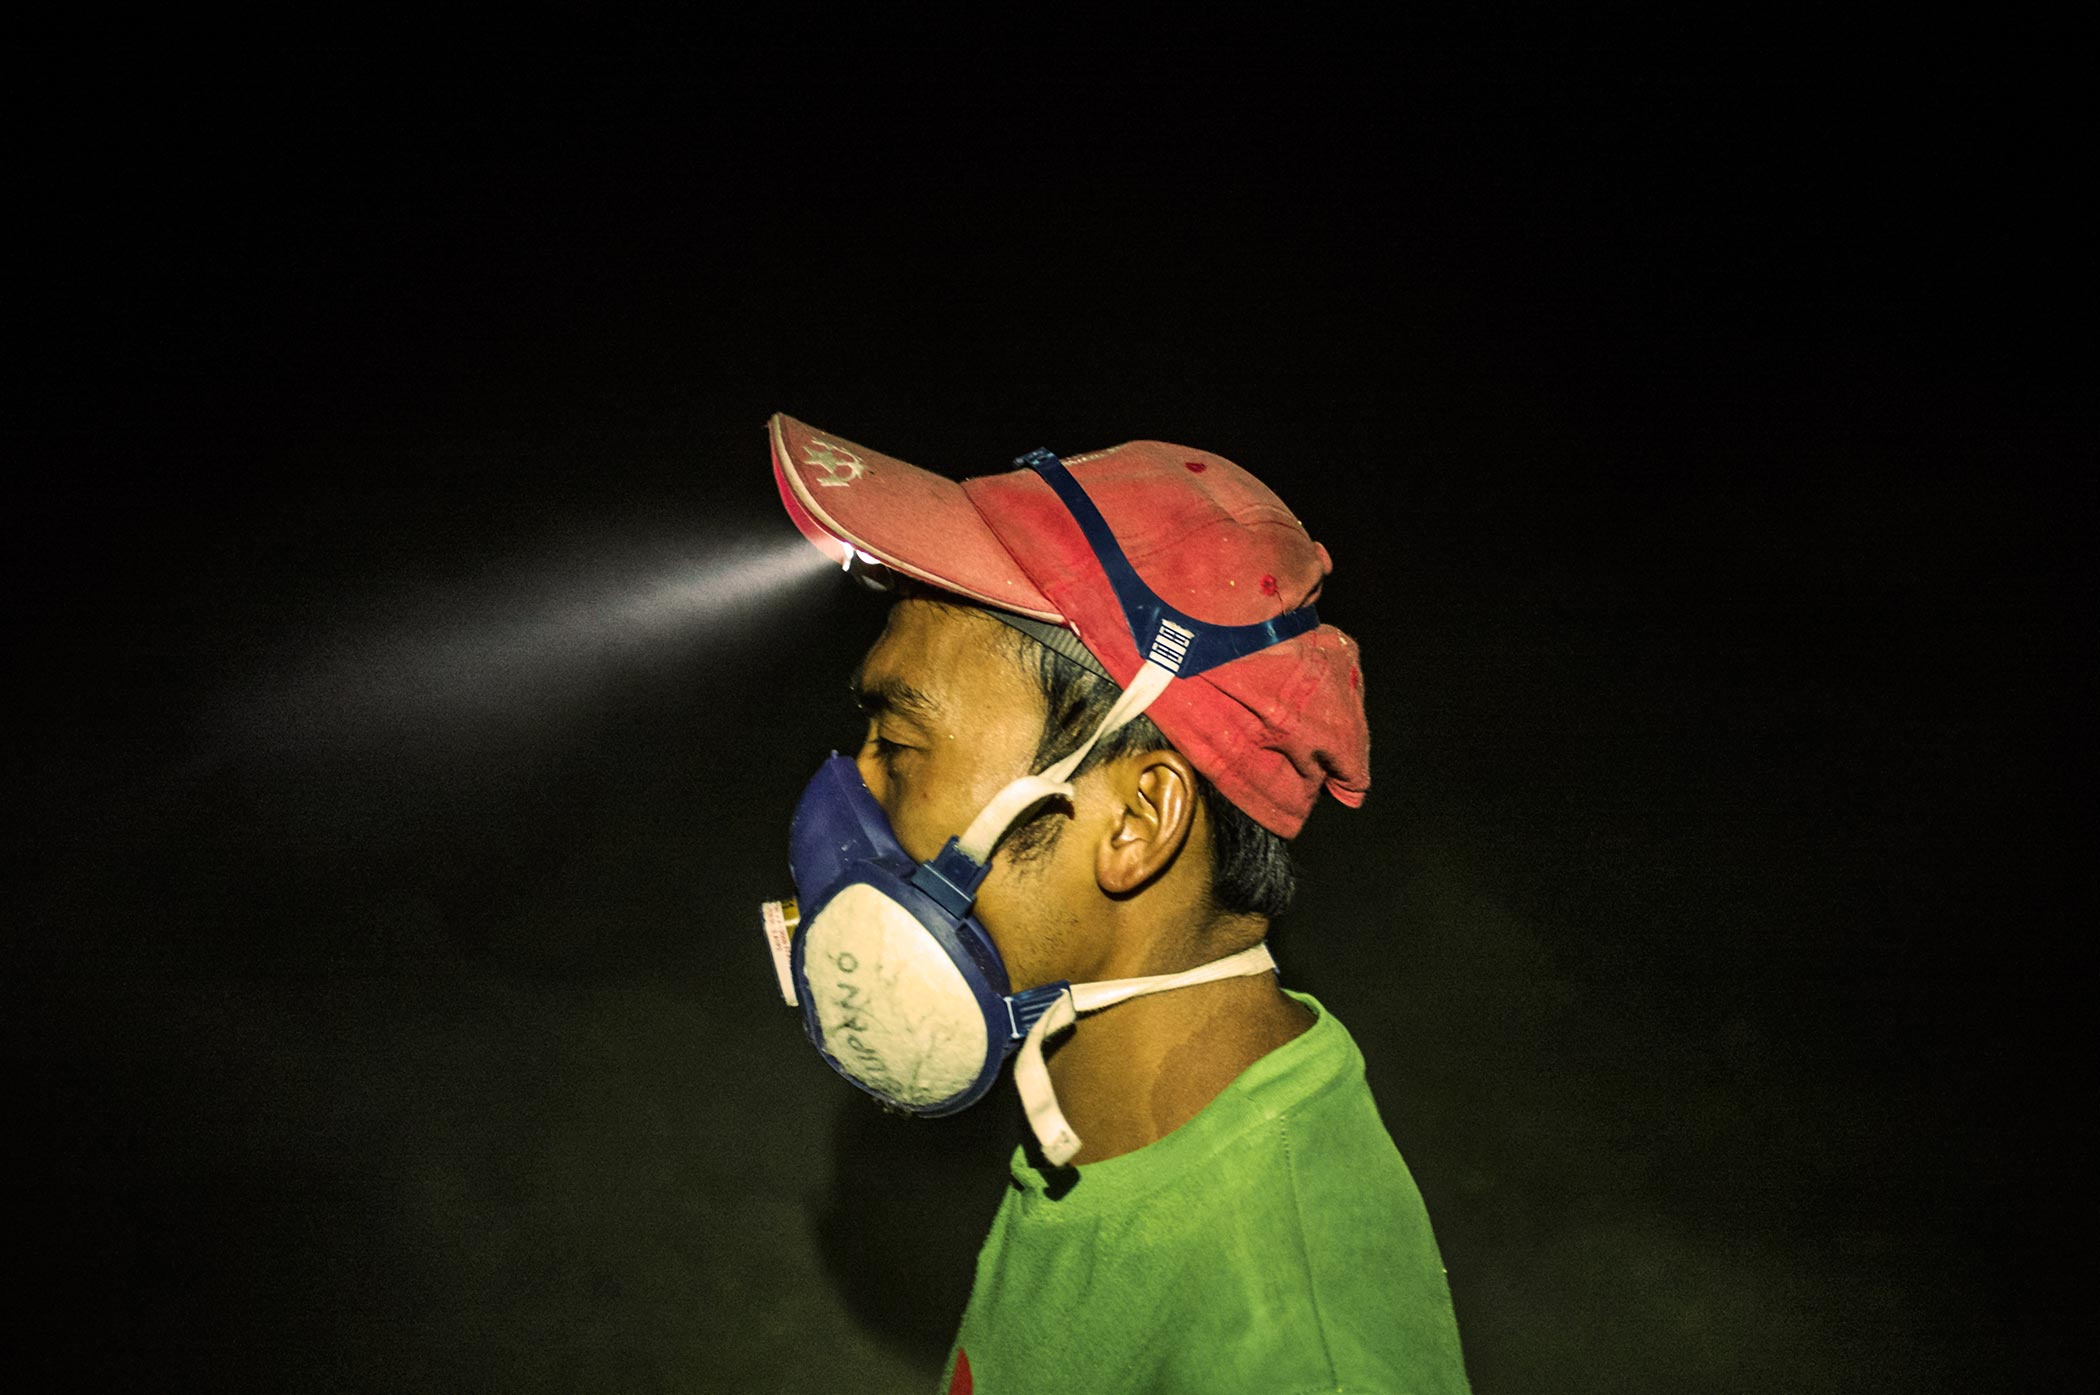 Miner with head torch and respirator.